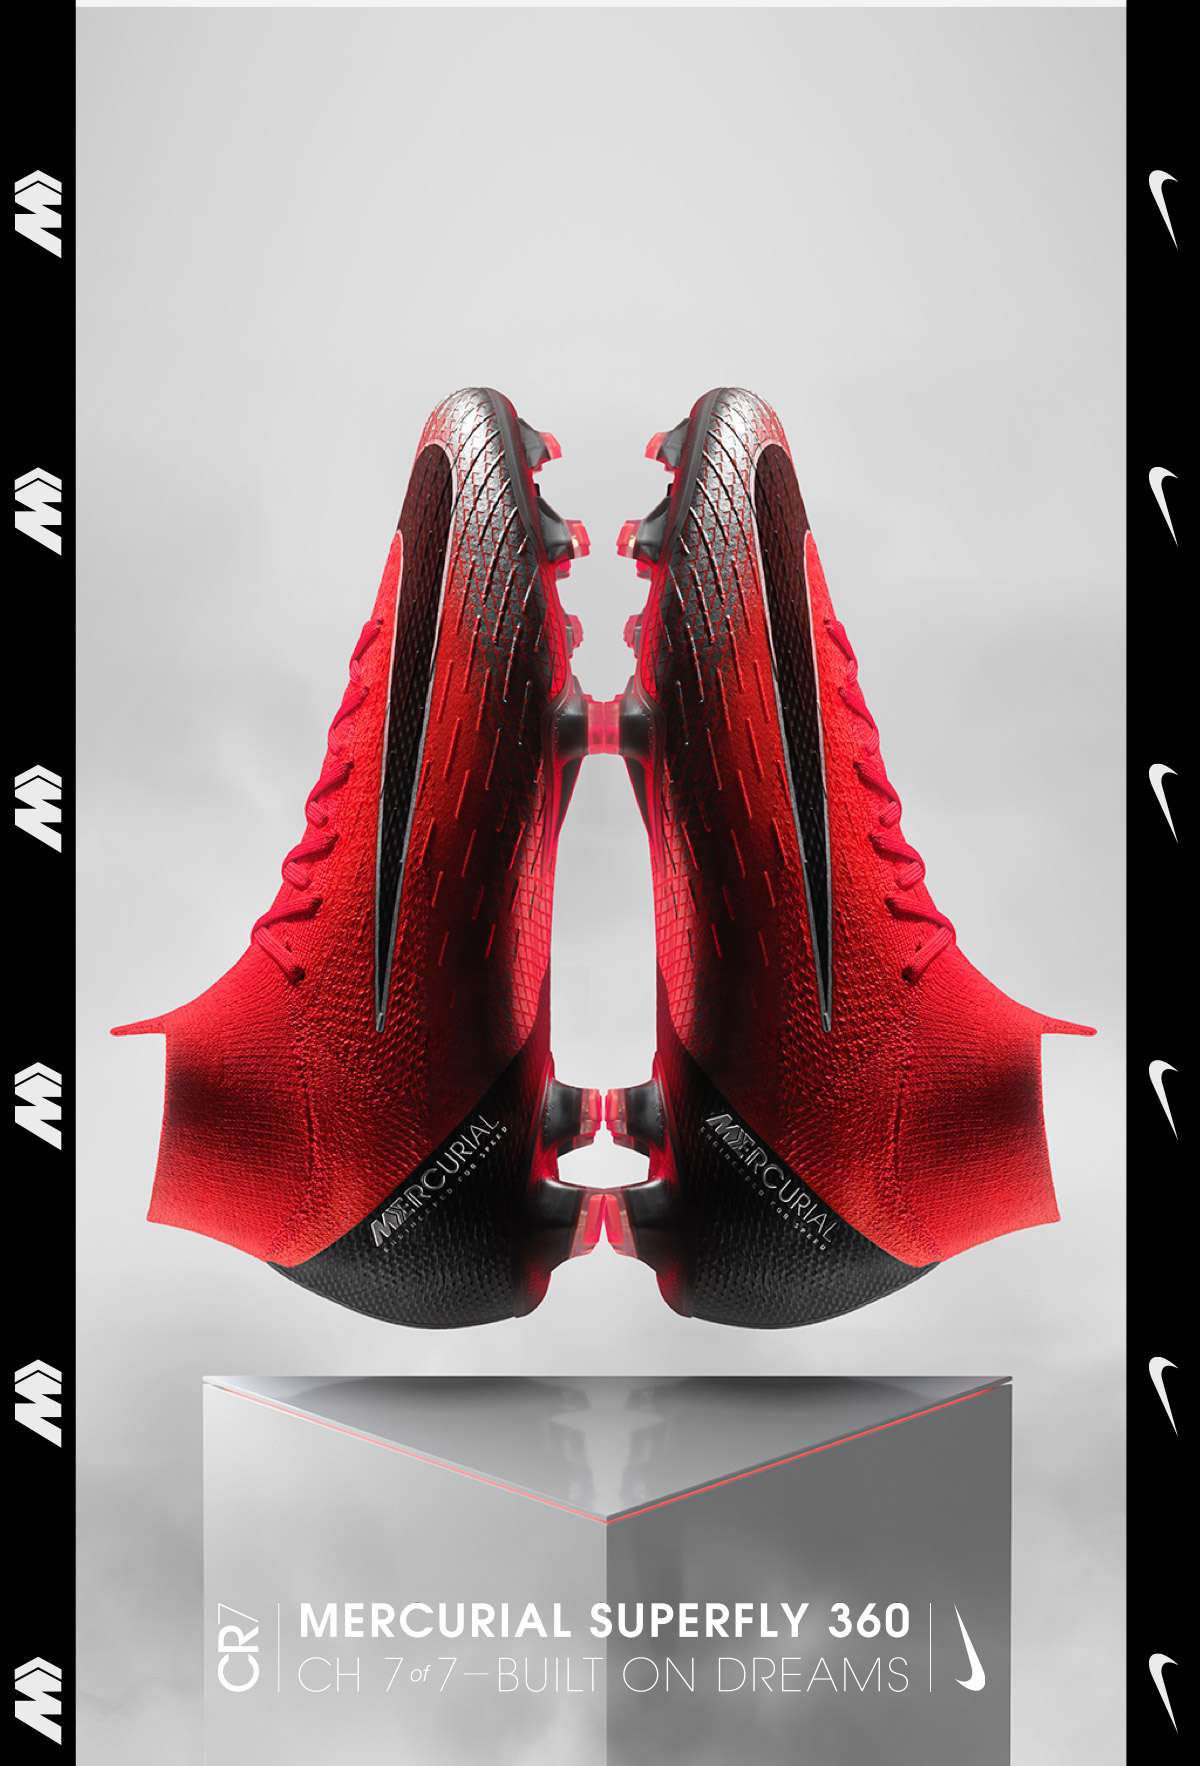 CR7 | MERCURIAL SUPERFLY 360 | CH 7 of 7 - BUILT ON DREAMS